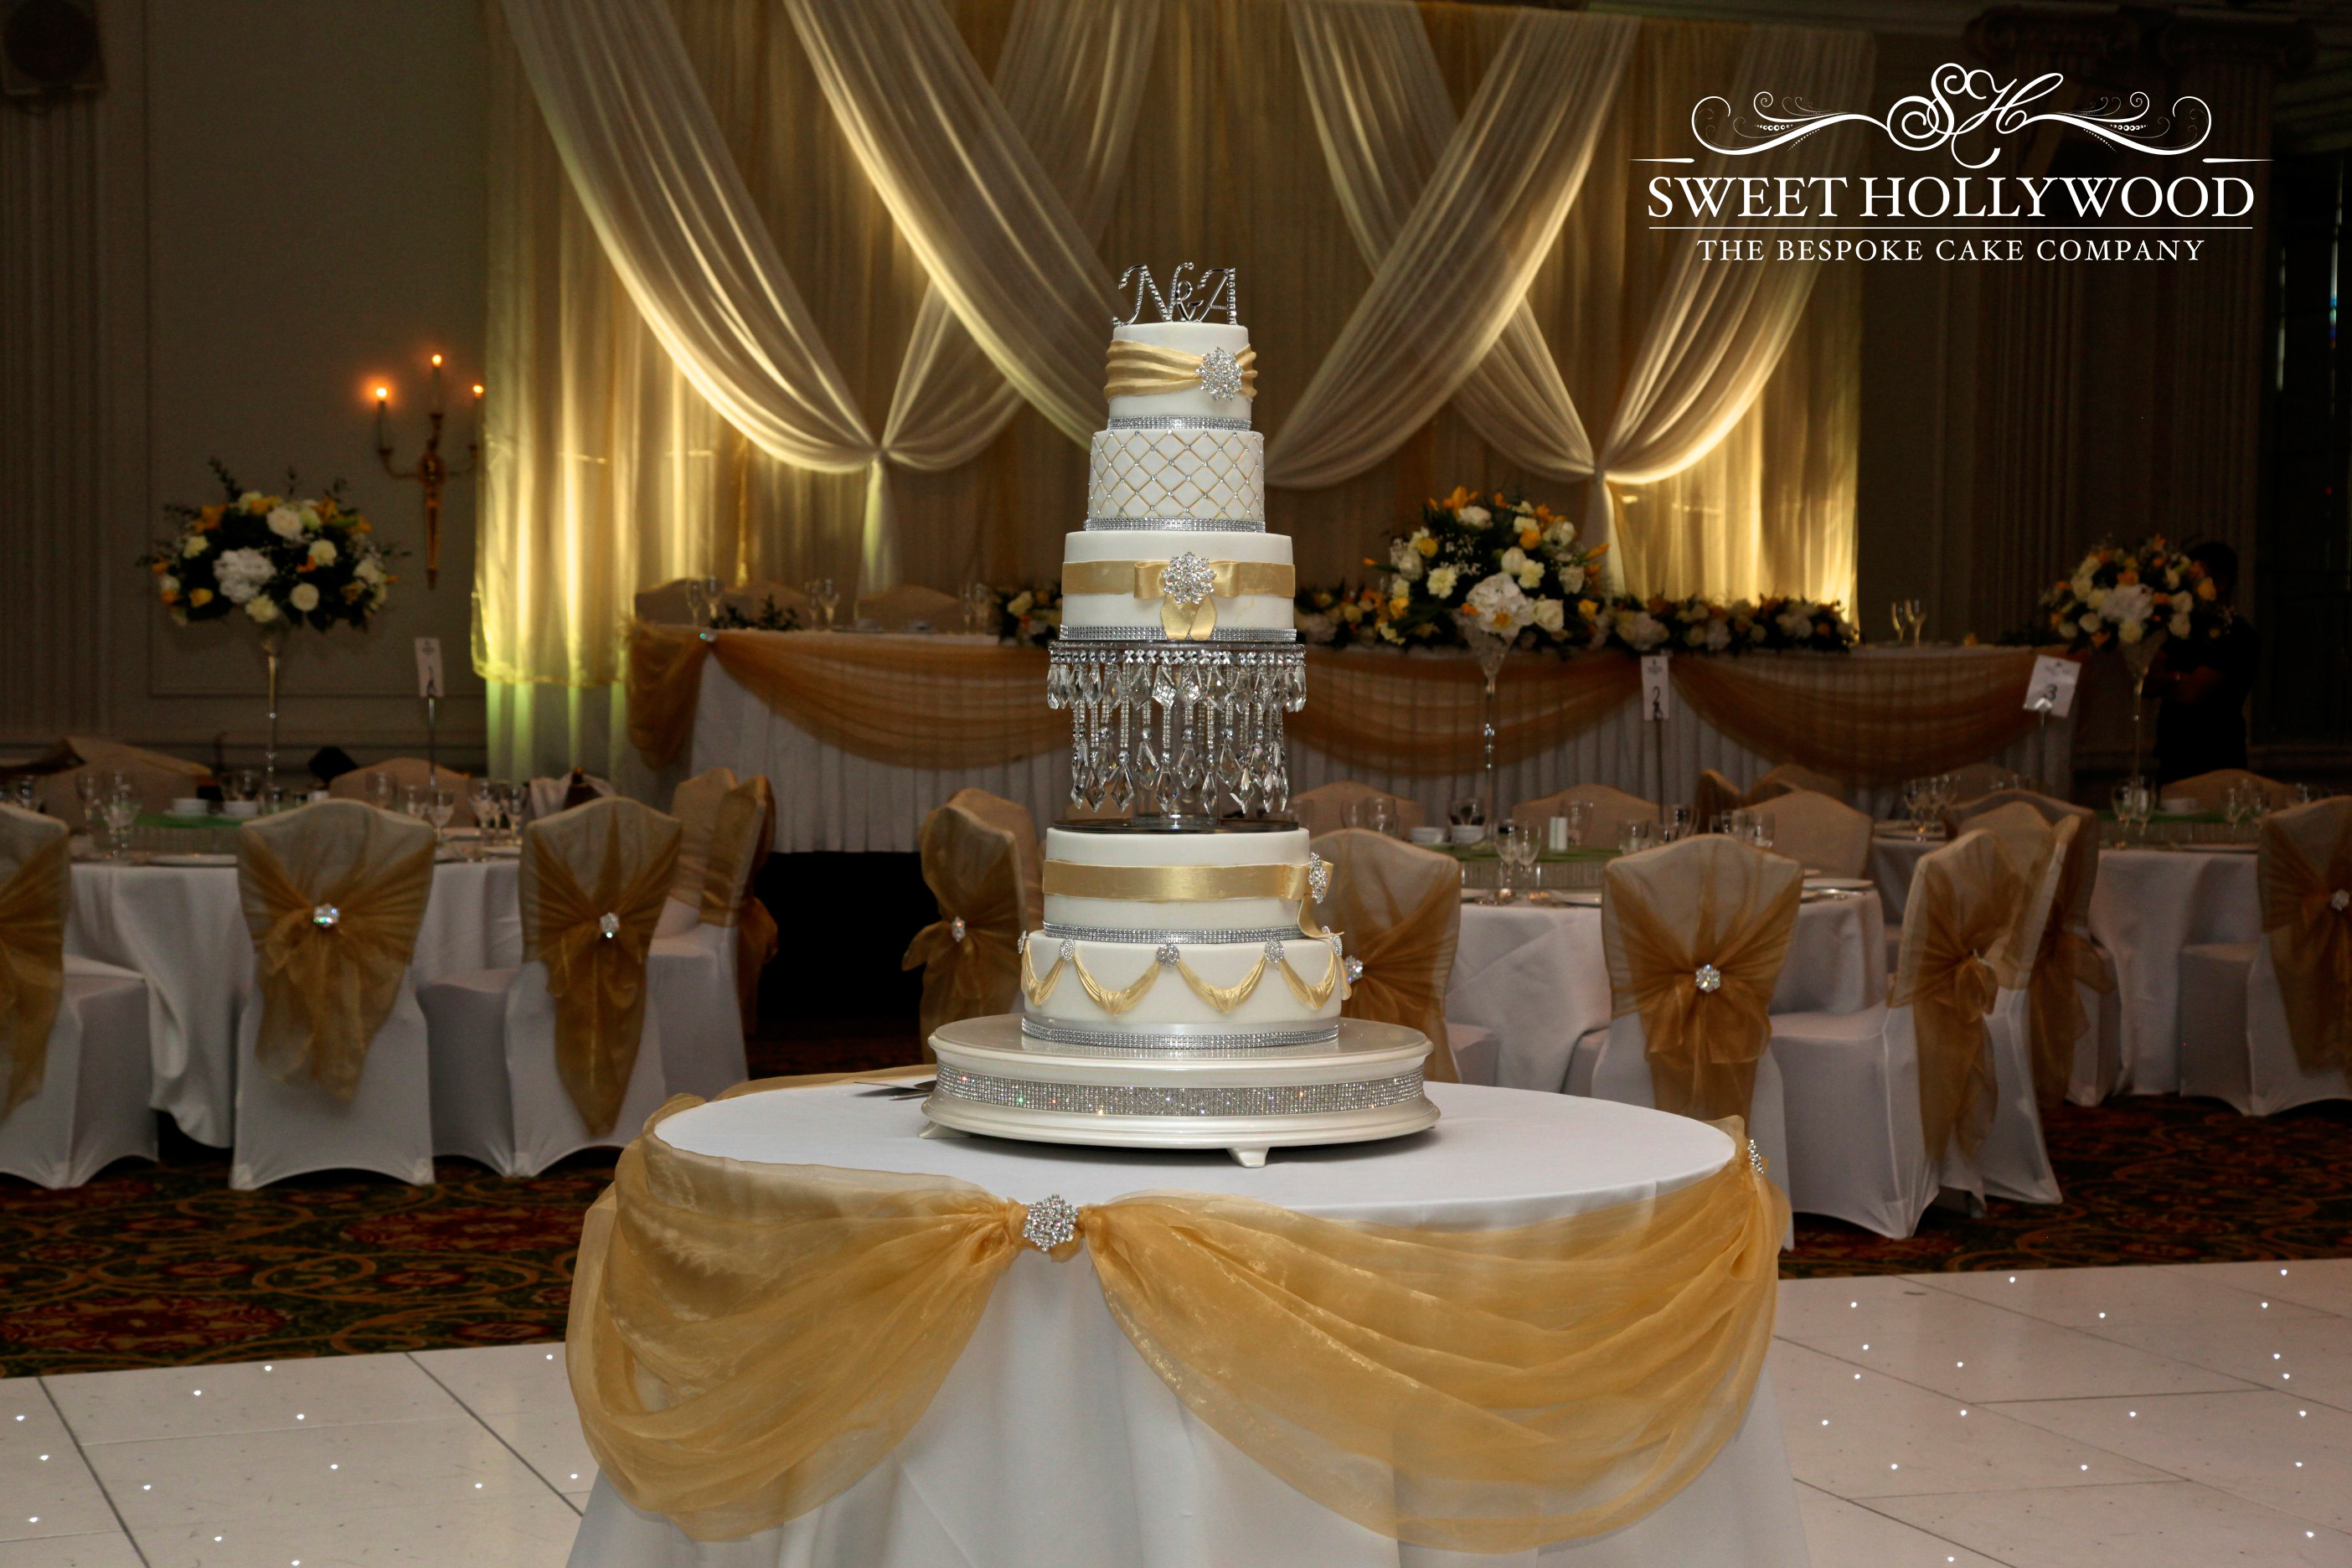 Chandelier Wedding Cakes  Gold & Silver Chandelier Wedding Cake